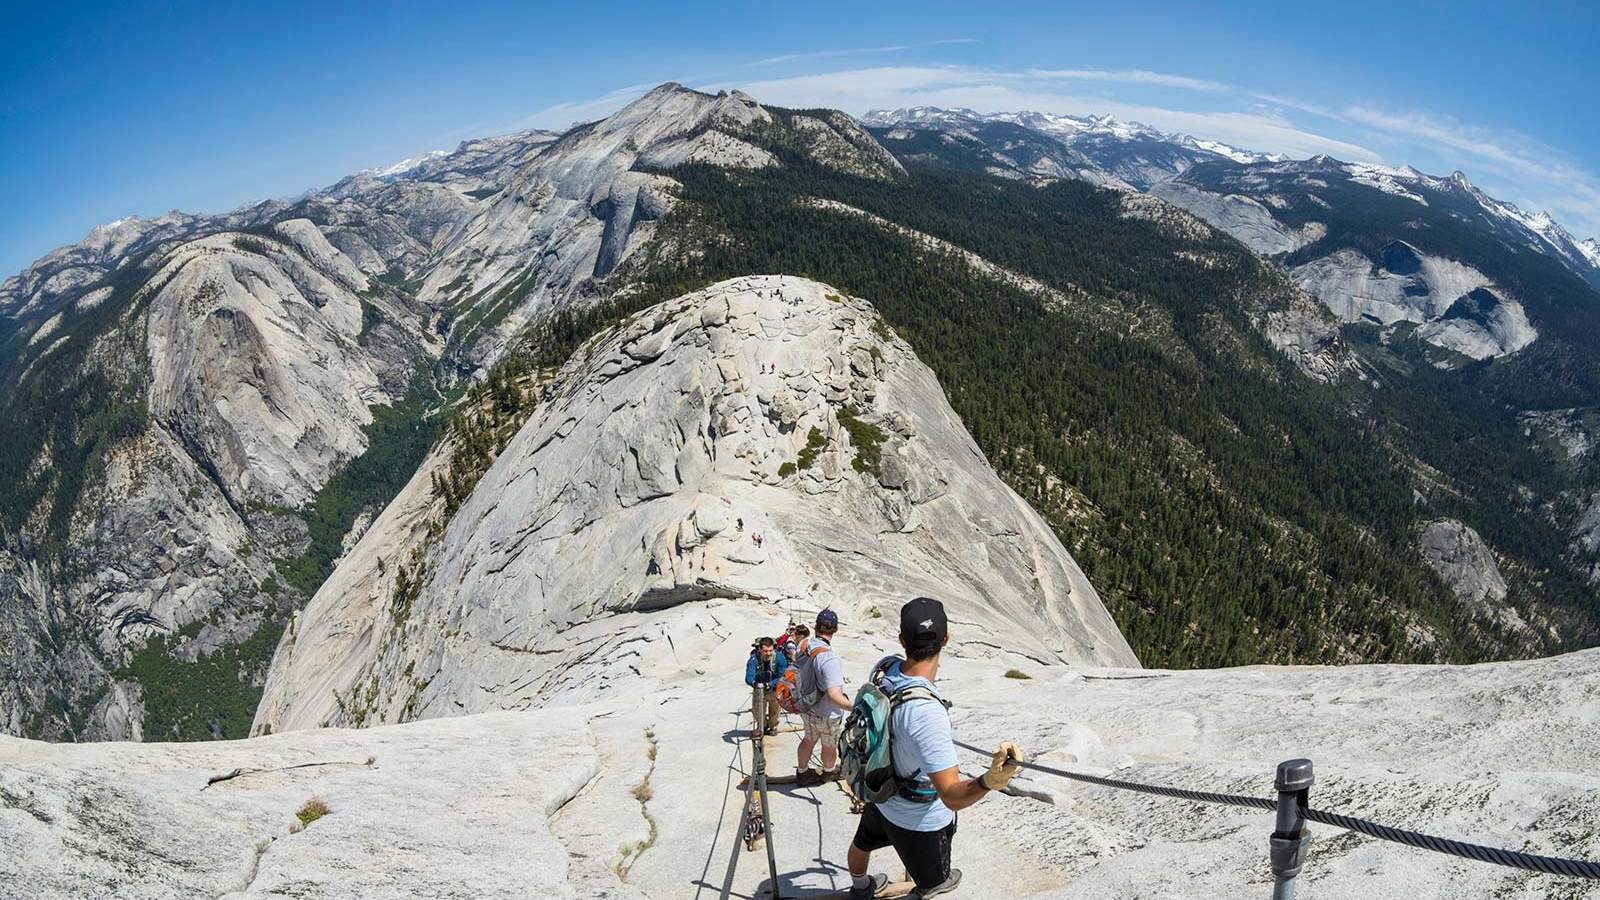 Half Dome Yosemite National Park Cable Route Hike NPS